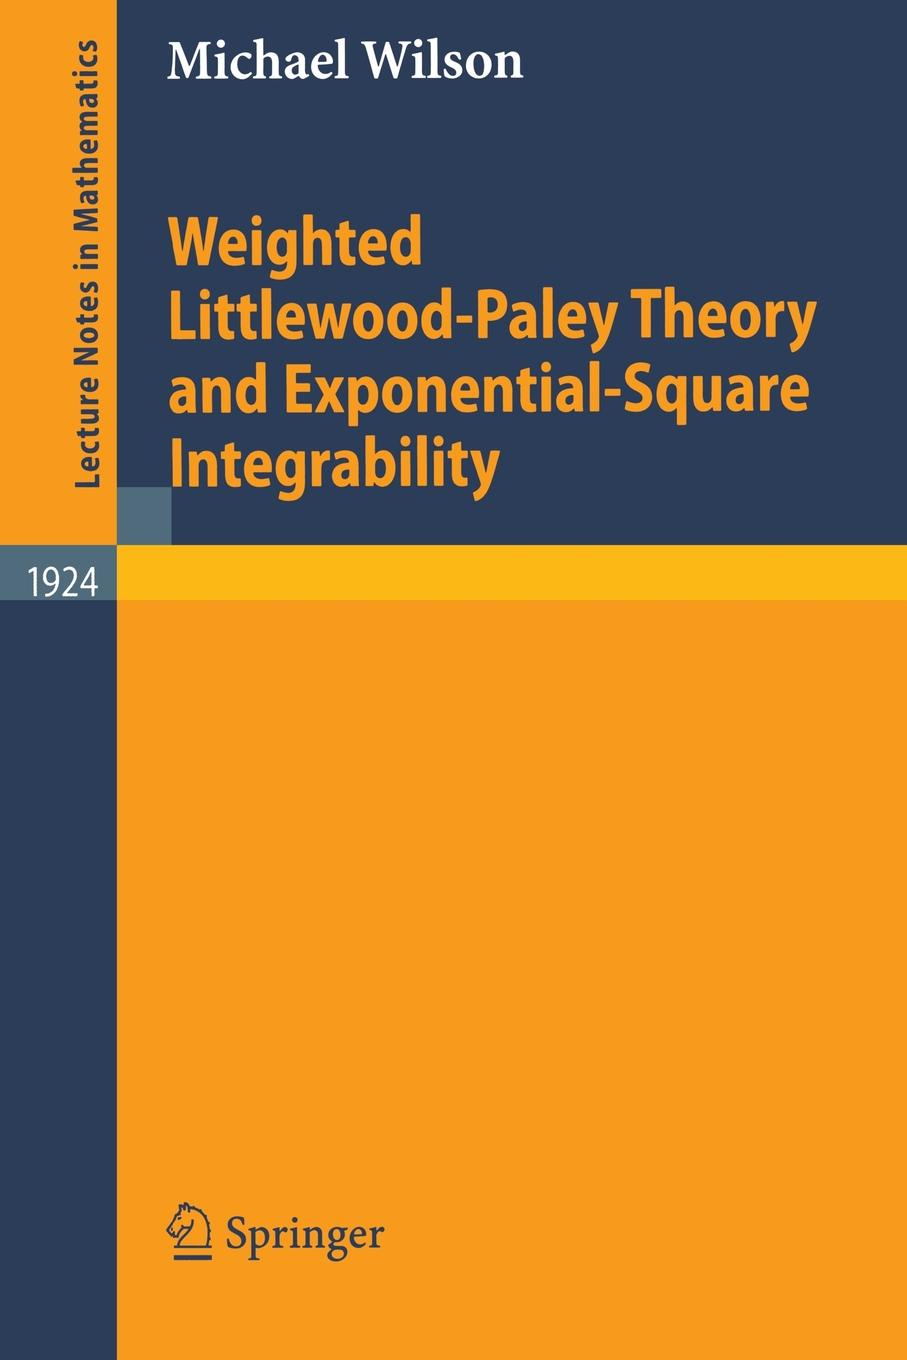 цены на Michael Wilson Weighted Littlewood-Paley Theory and Exponential-Square Integrability  в интернет-магазинах